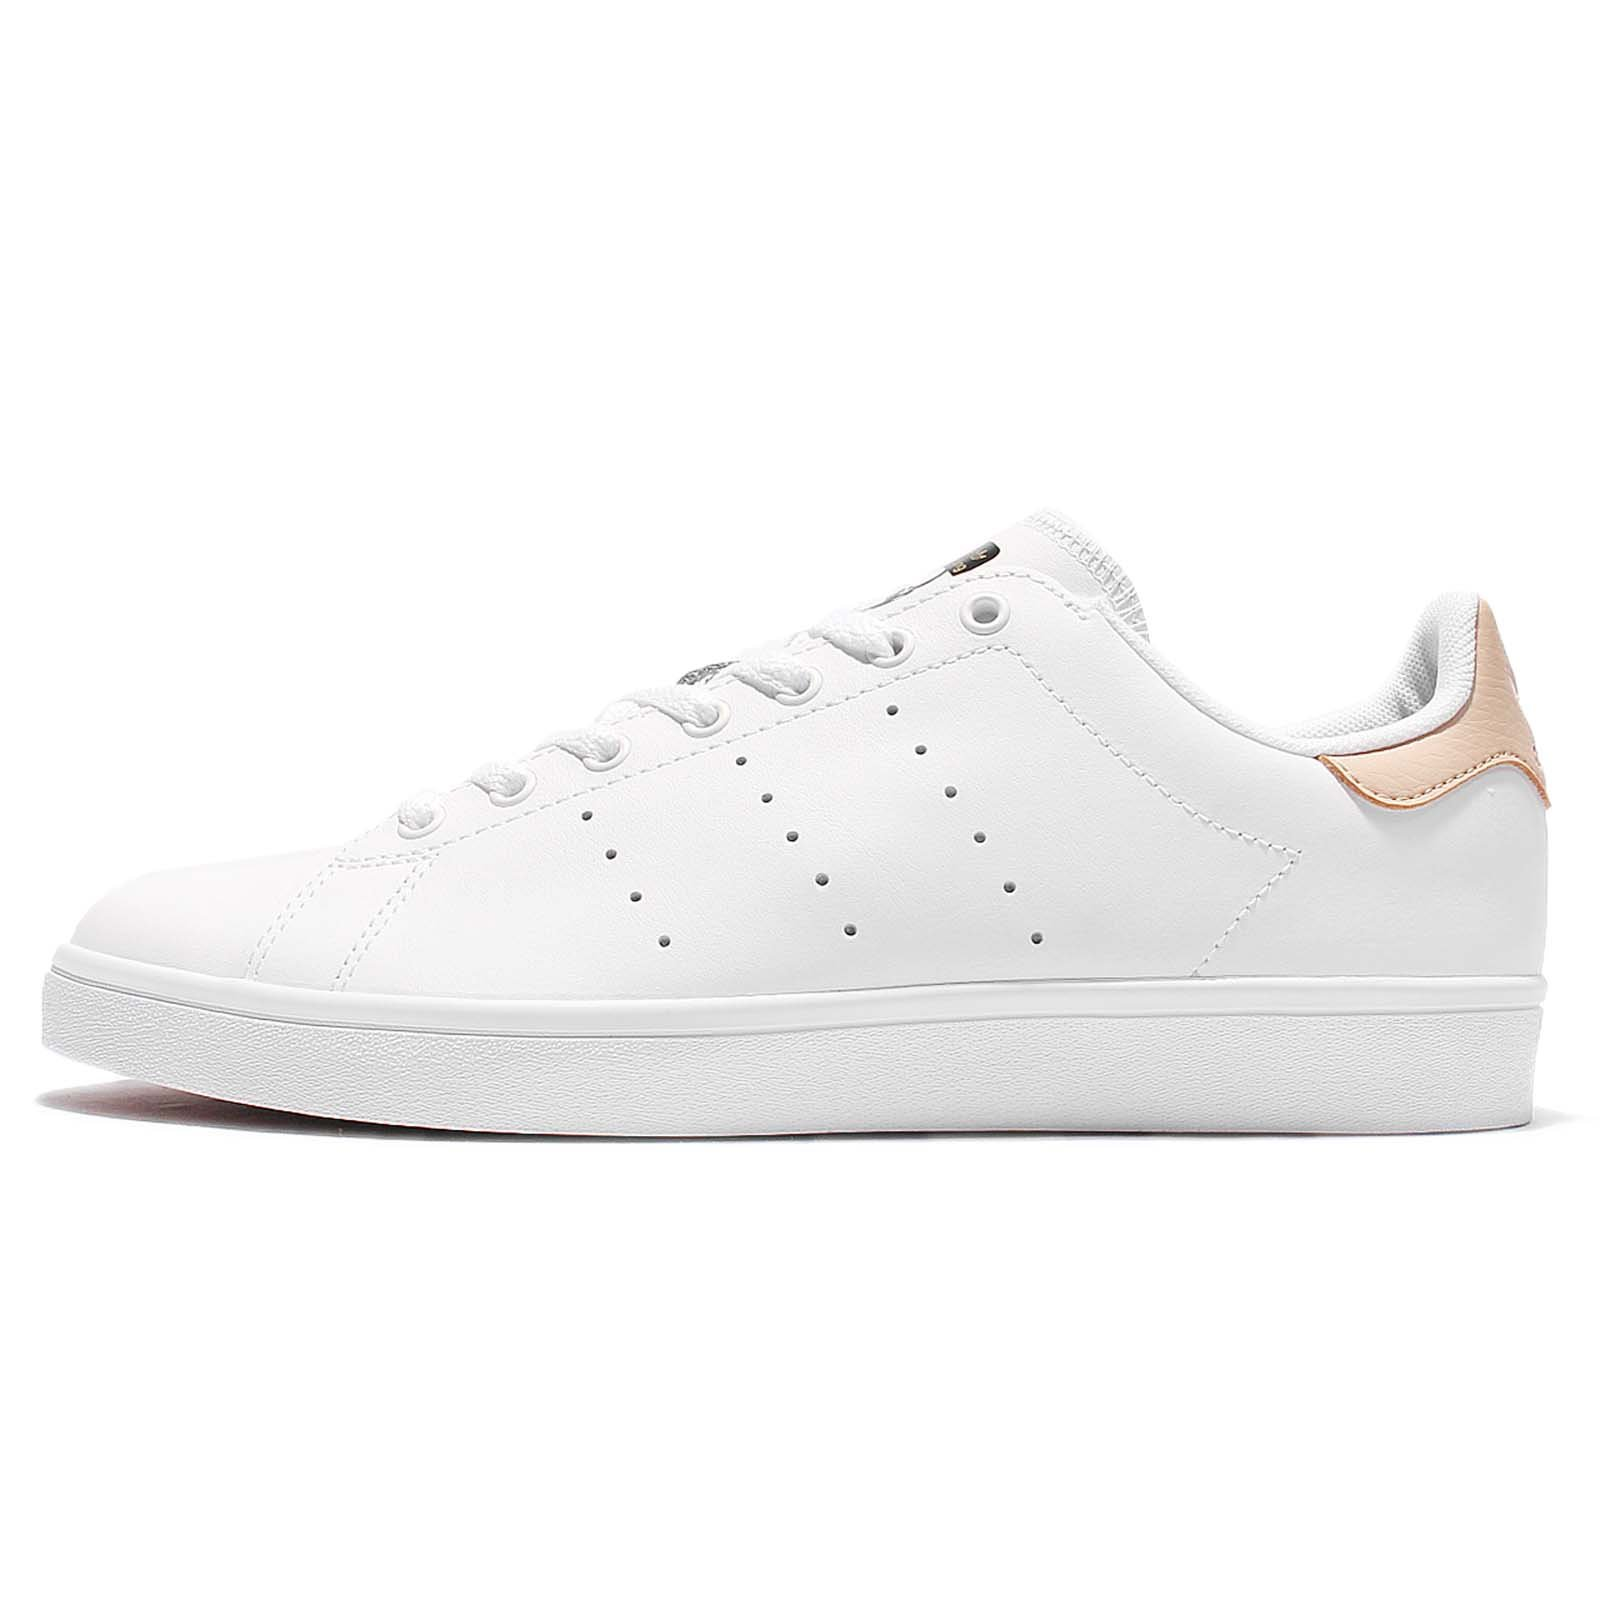 165c1cbf1fc Galleon - Adidas Men s Stan Smith Vulc